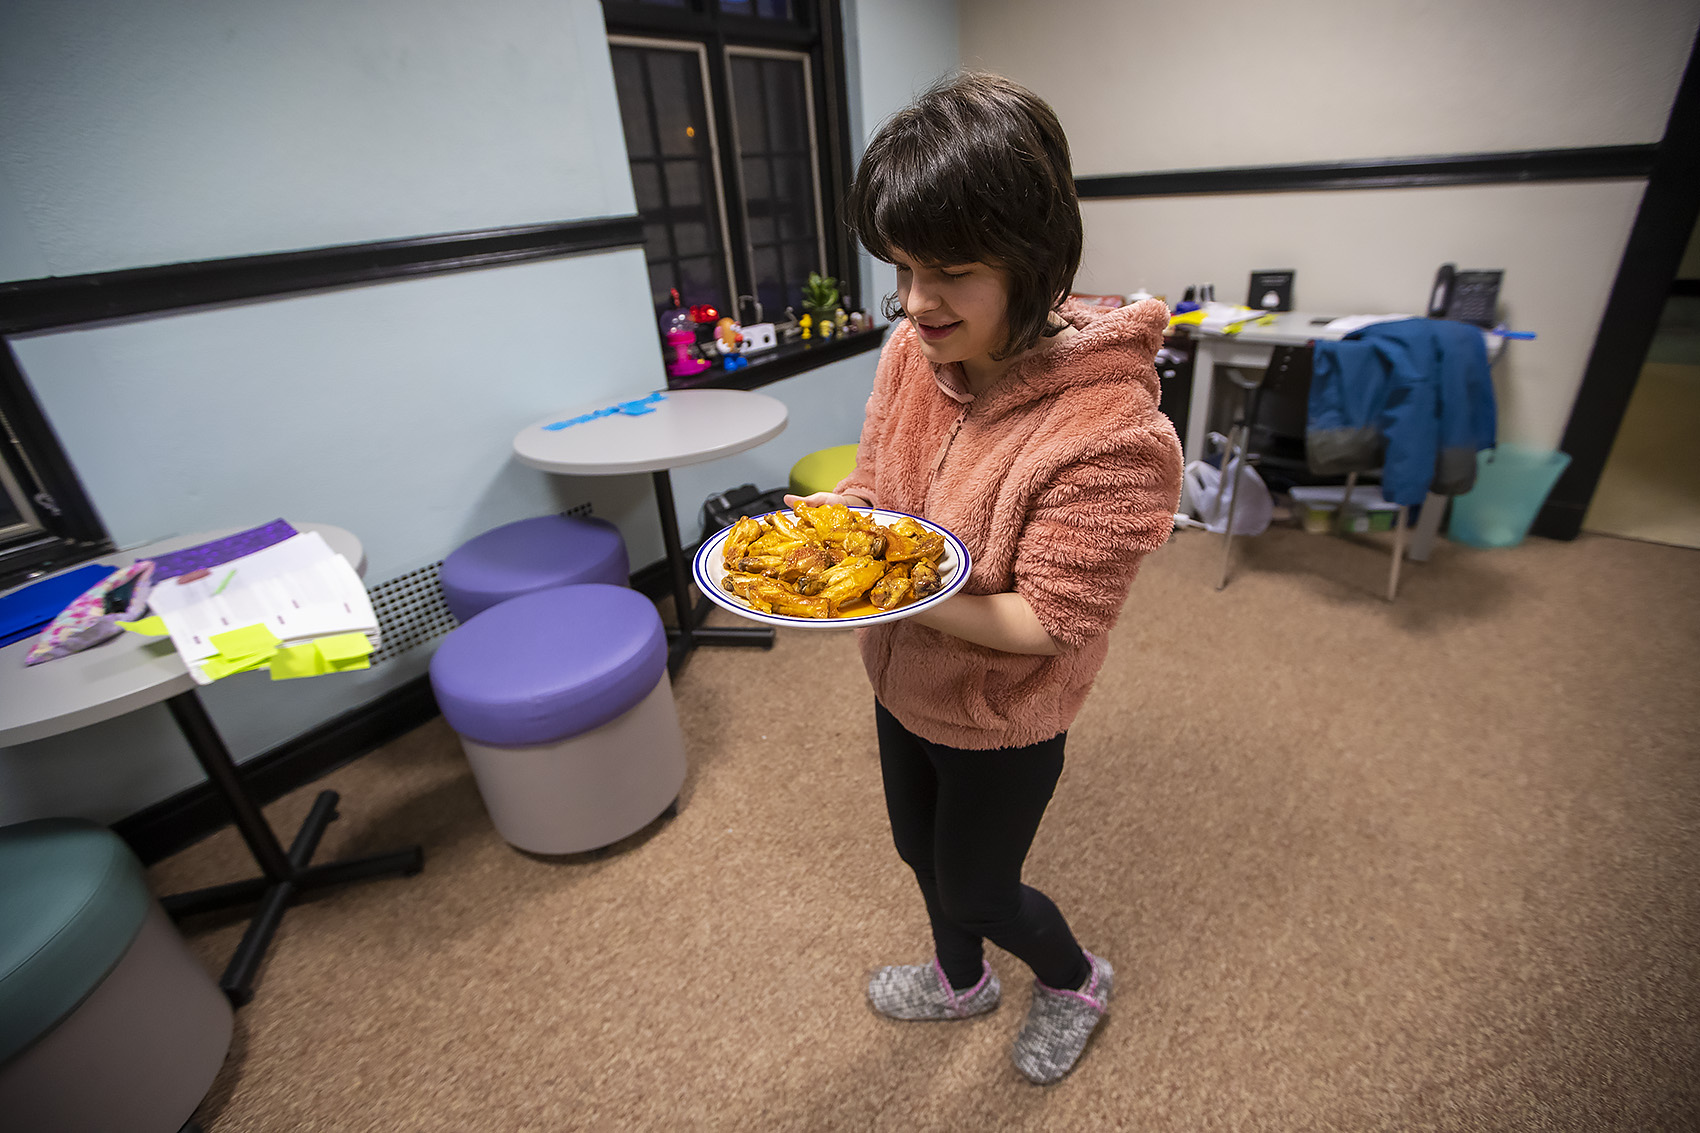 Jordan Scheffer brings the finished buffalo wings into the living room where the students will serve the food and watch the game. (Jesse Costa/WBUR)